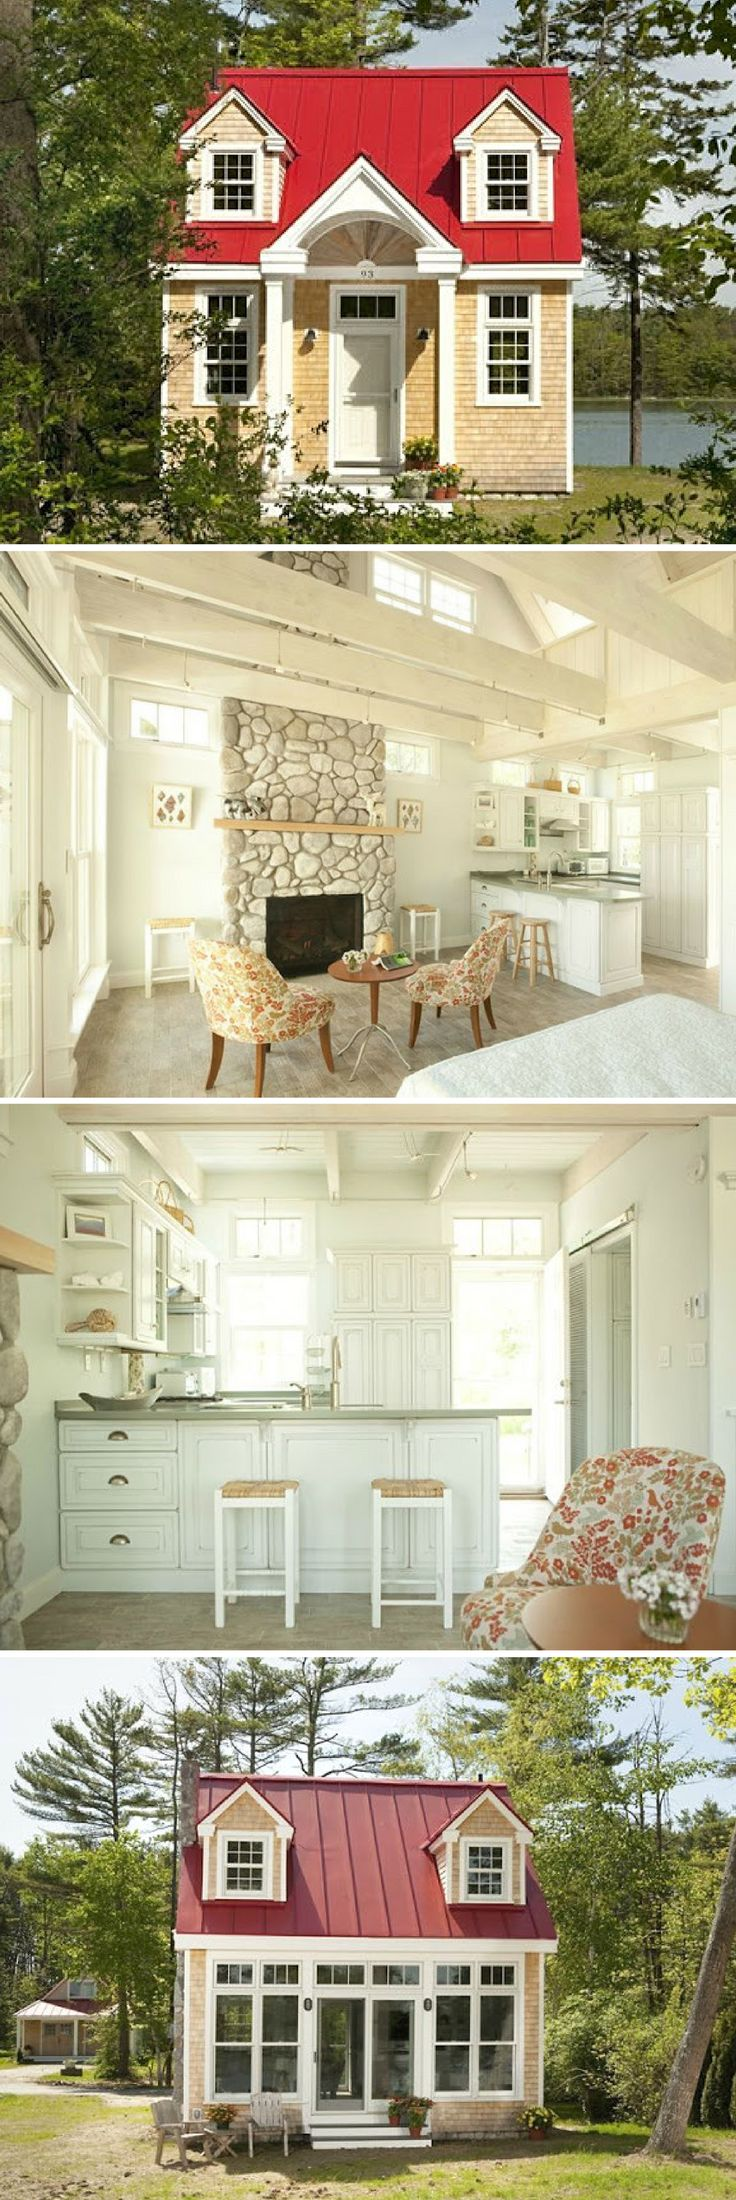 Guest House Interior Design Property Amazing Best 25 Guest House Cottage Ideas On Pinterest  Guest Cottage . Inspiration Design